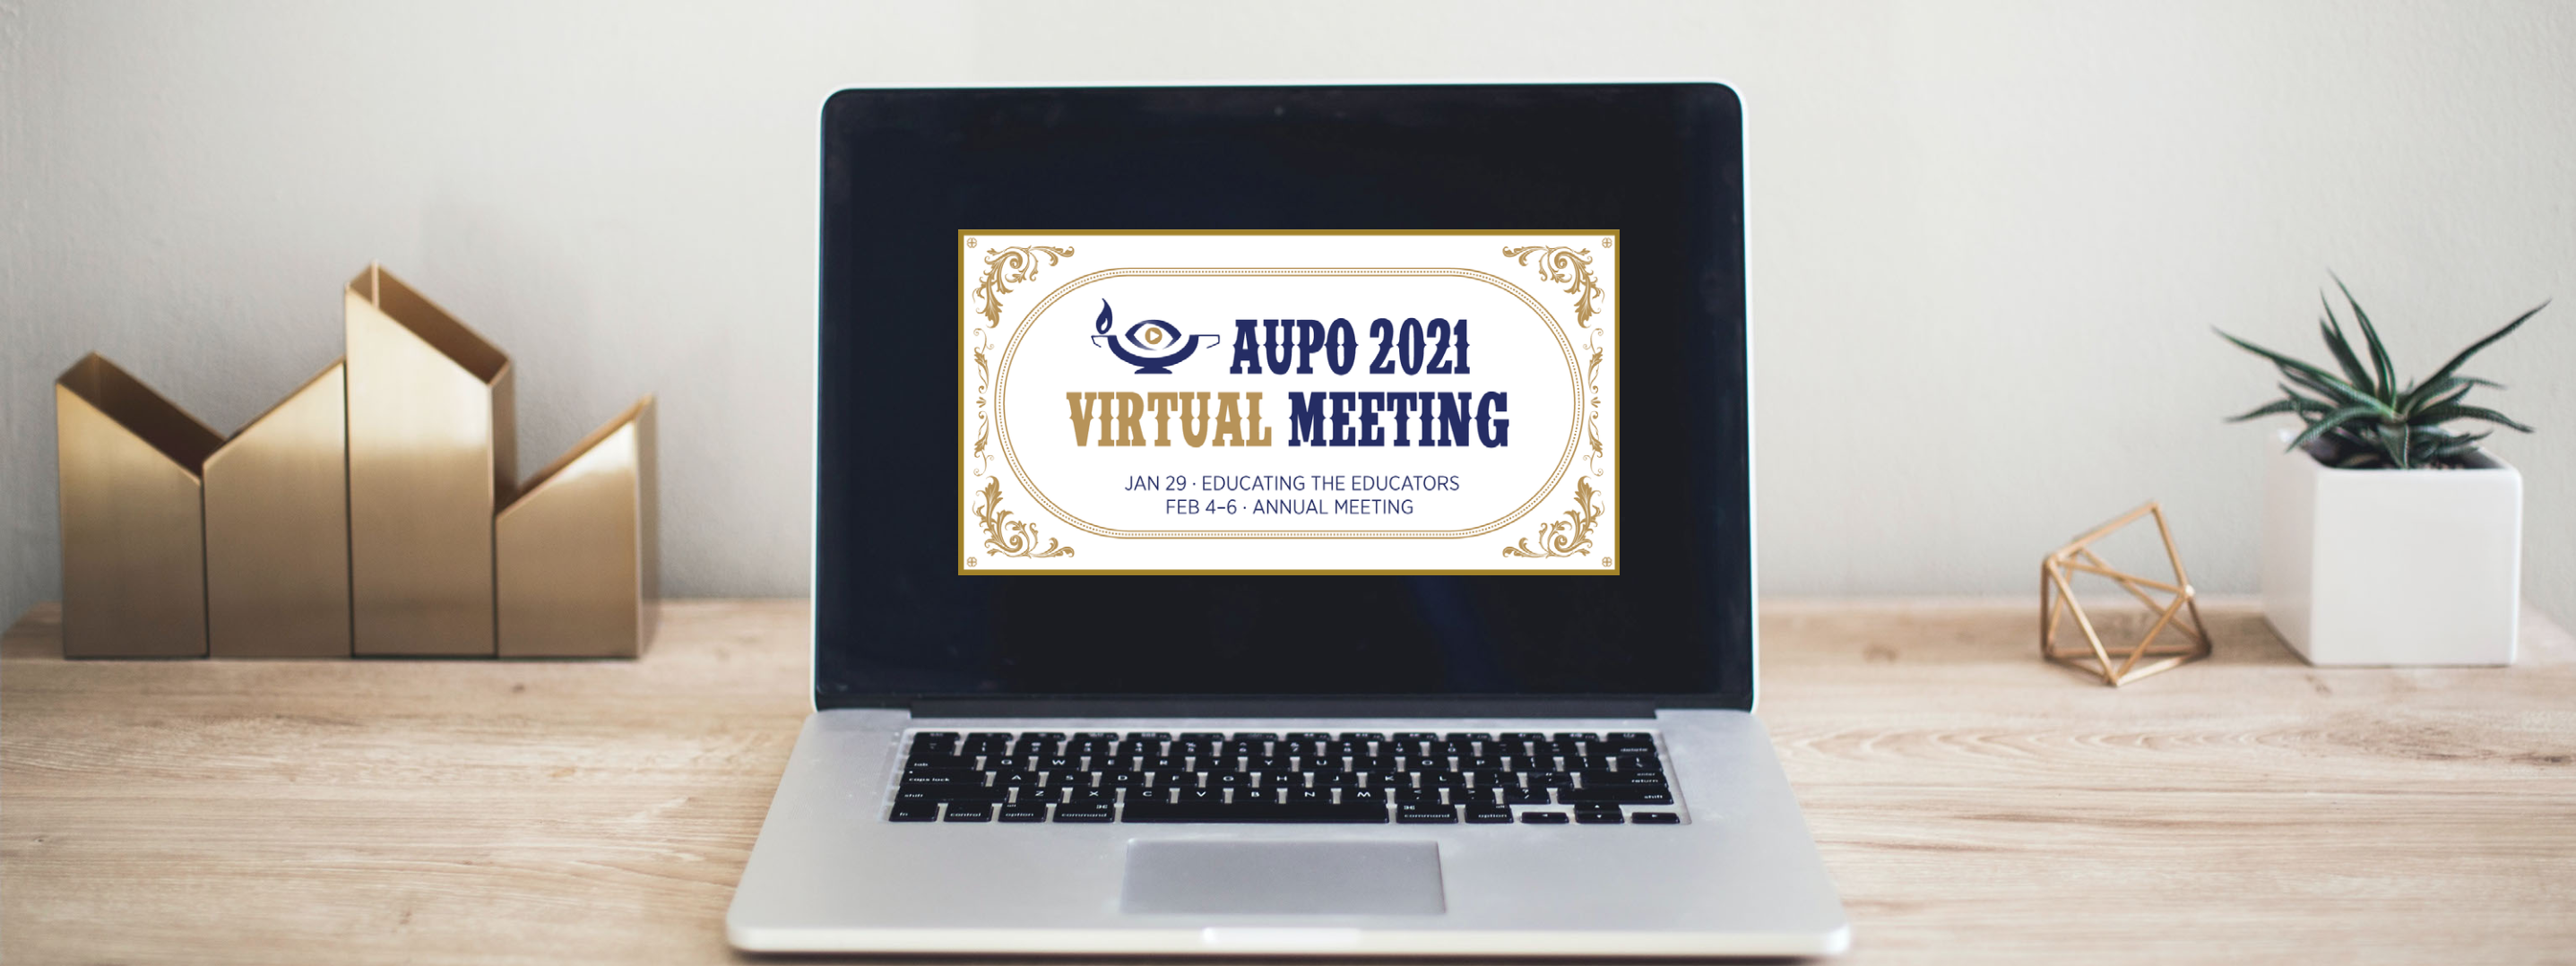 AUPO 2021 Annual Meeting